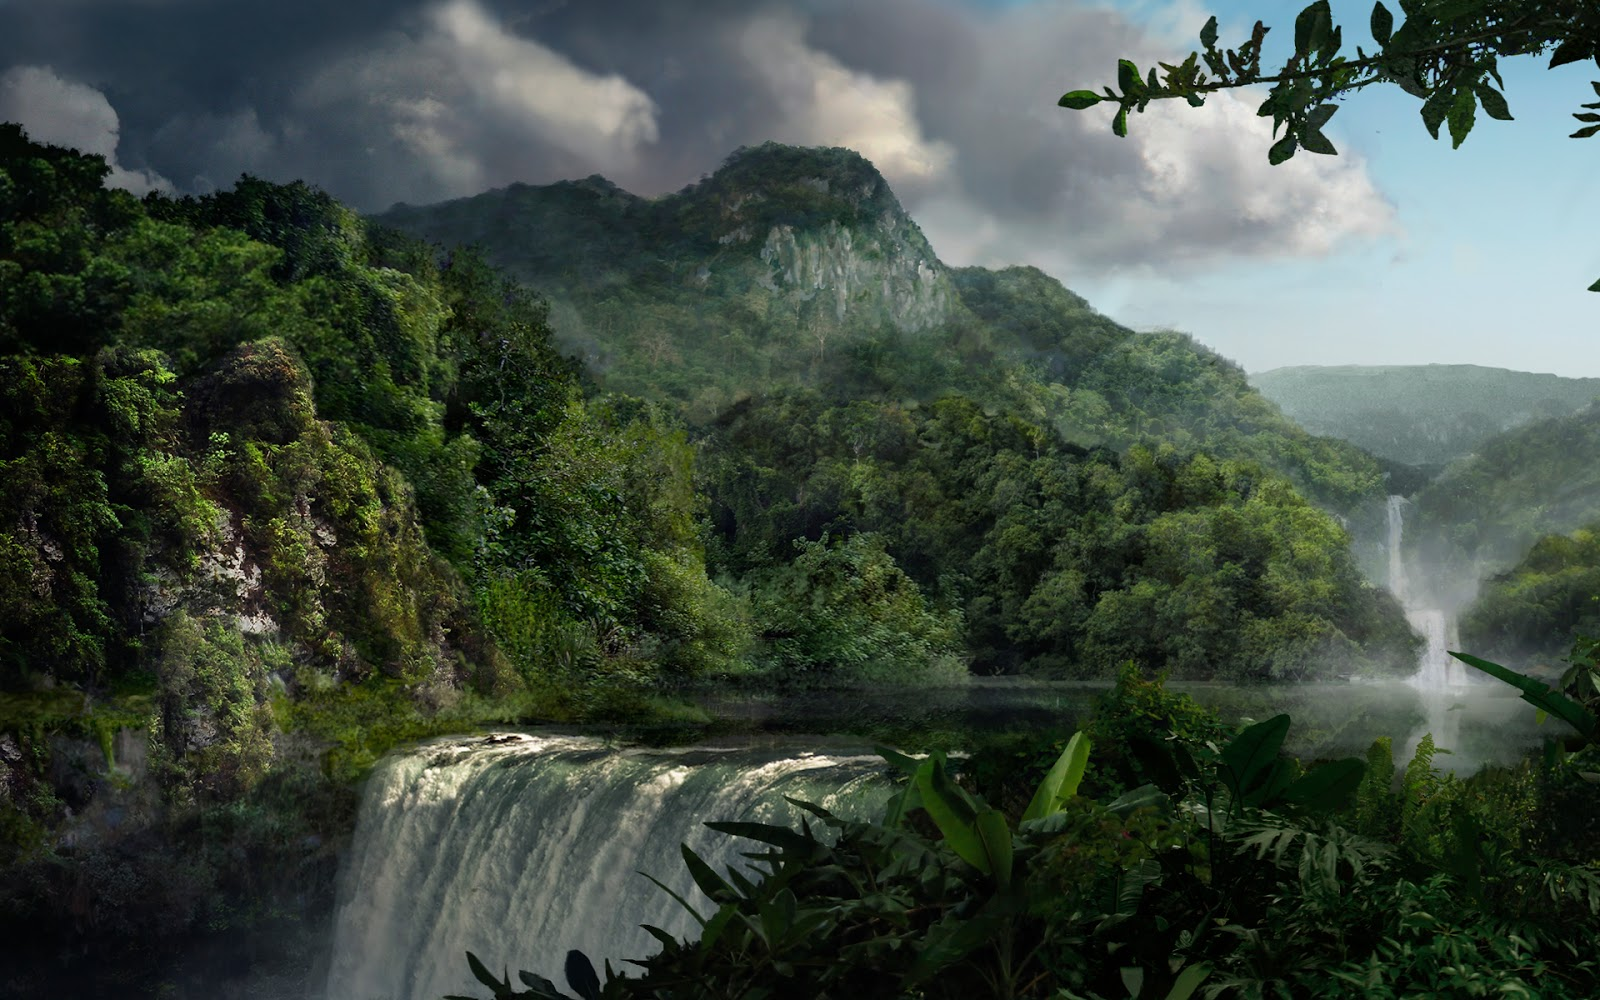 Hd Waterfall Backgrounds: Tropical Waterfall HD Wallpapers